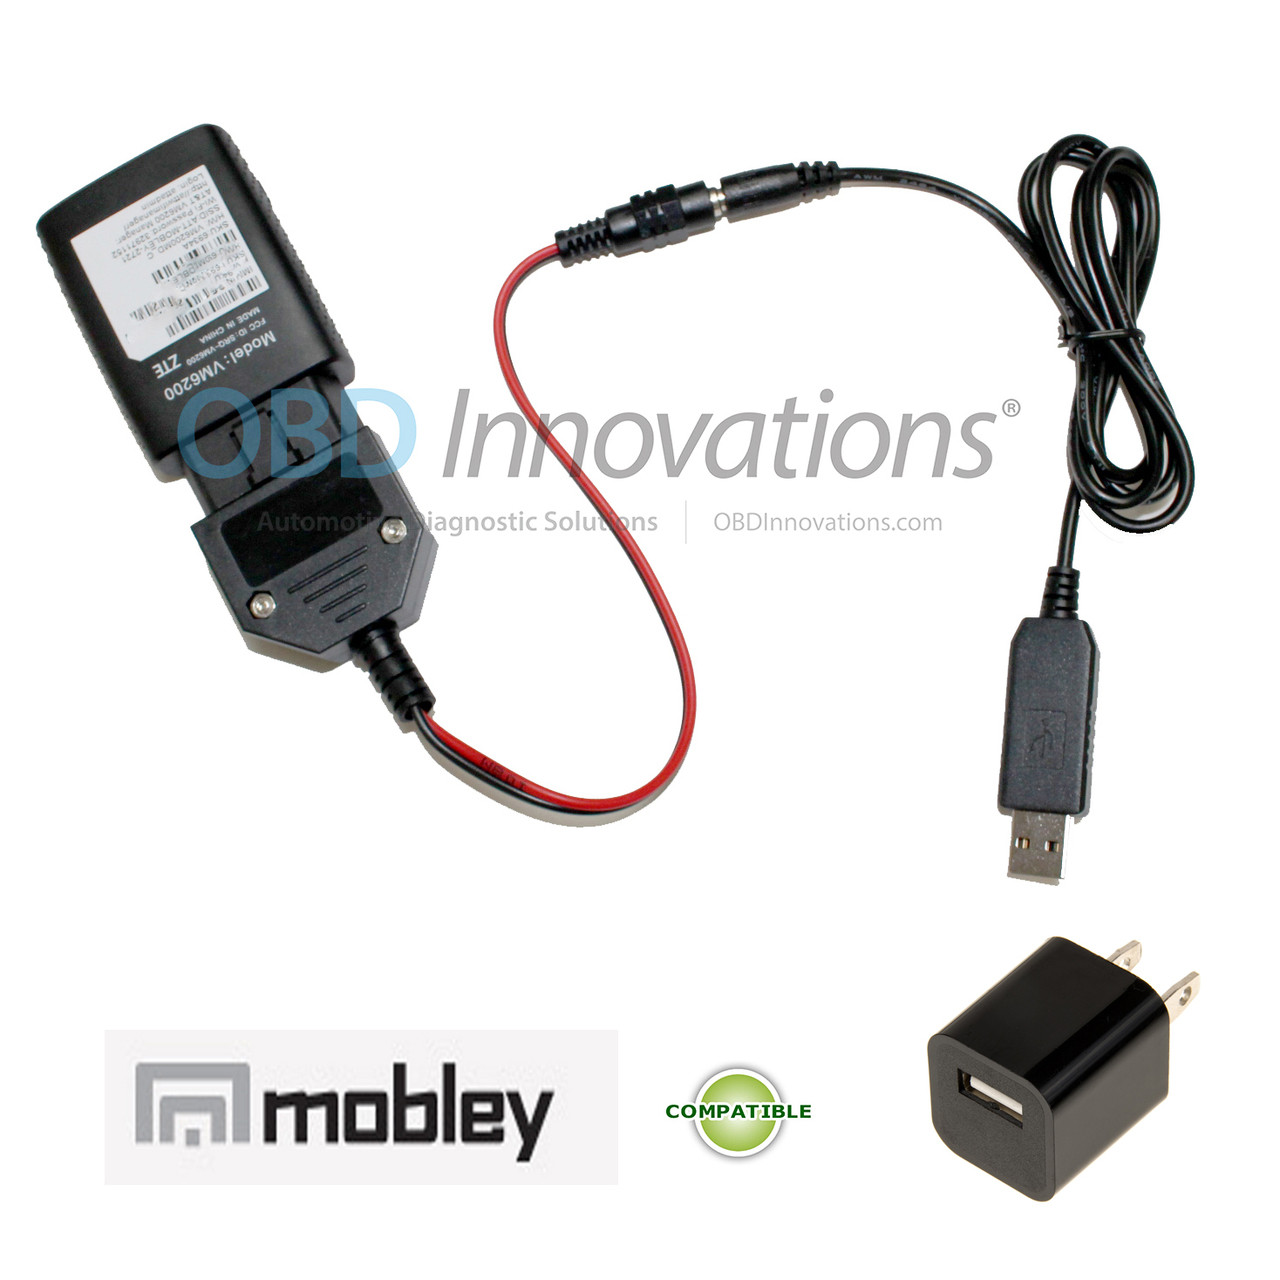 AC USB OBD2 Power Adapter for AT&T ZTE Mobley 4G LTE WiFi Hotspot